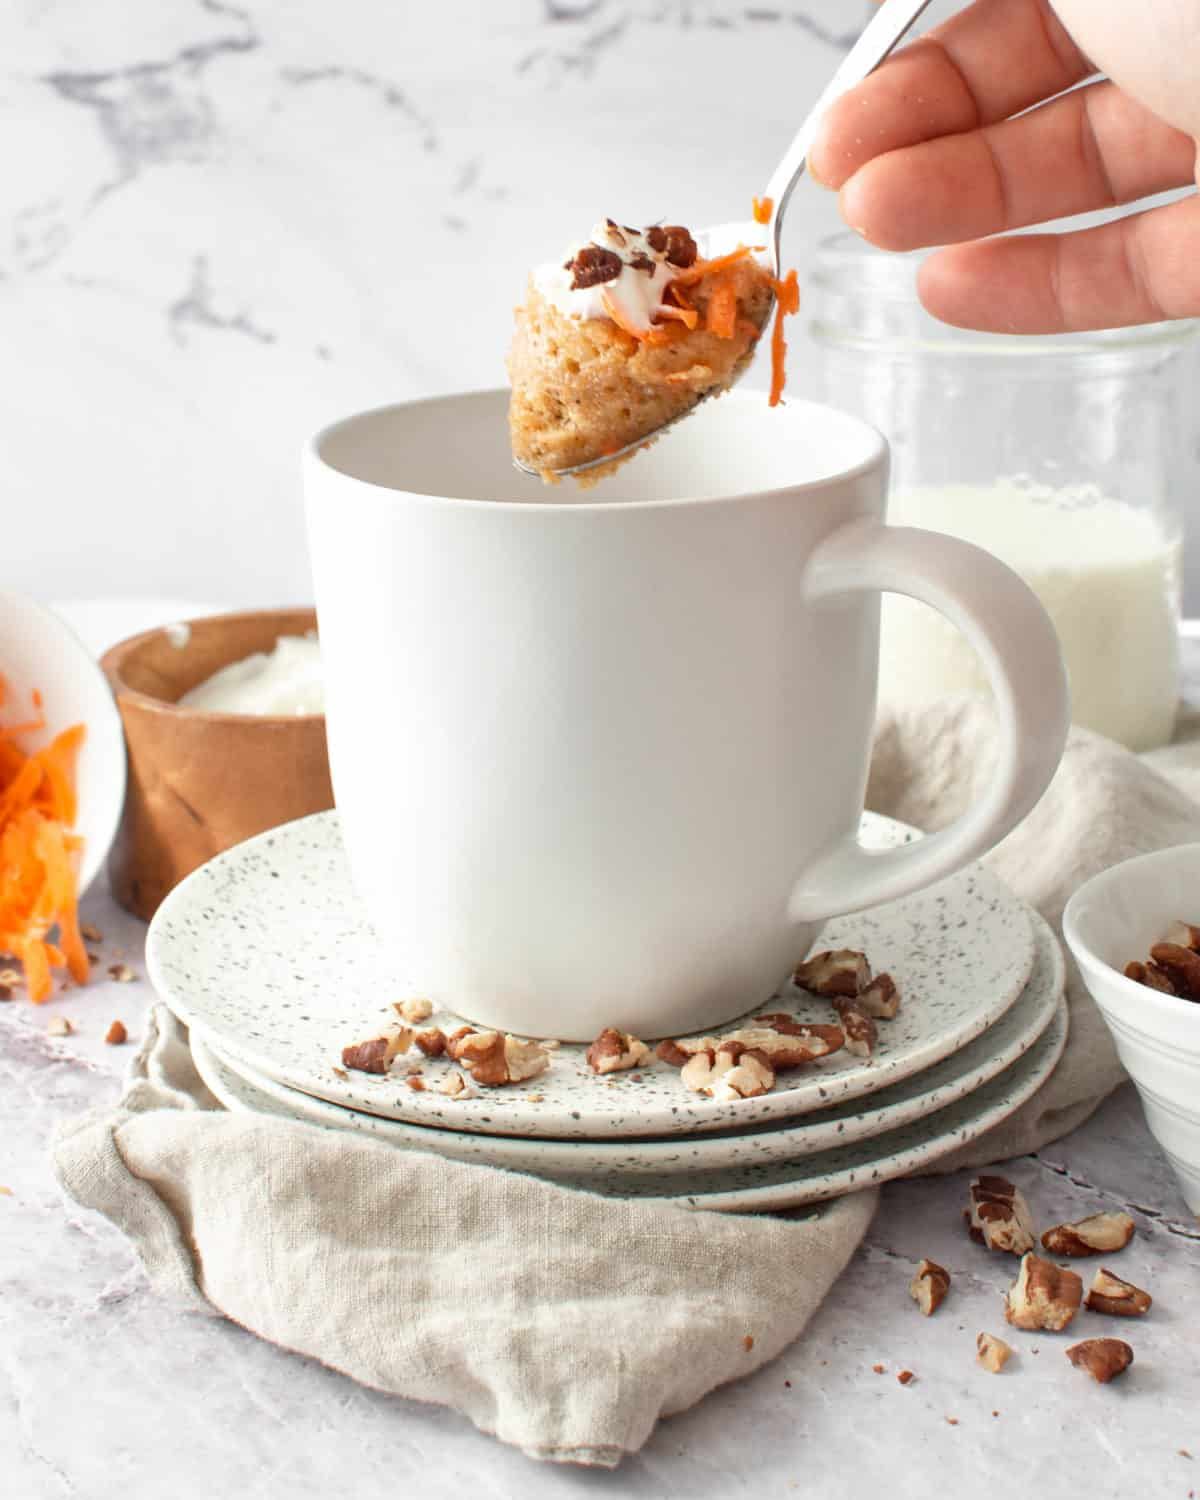 A spoonful of carrot mug cake with almonds.